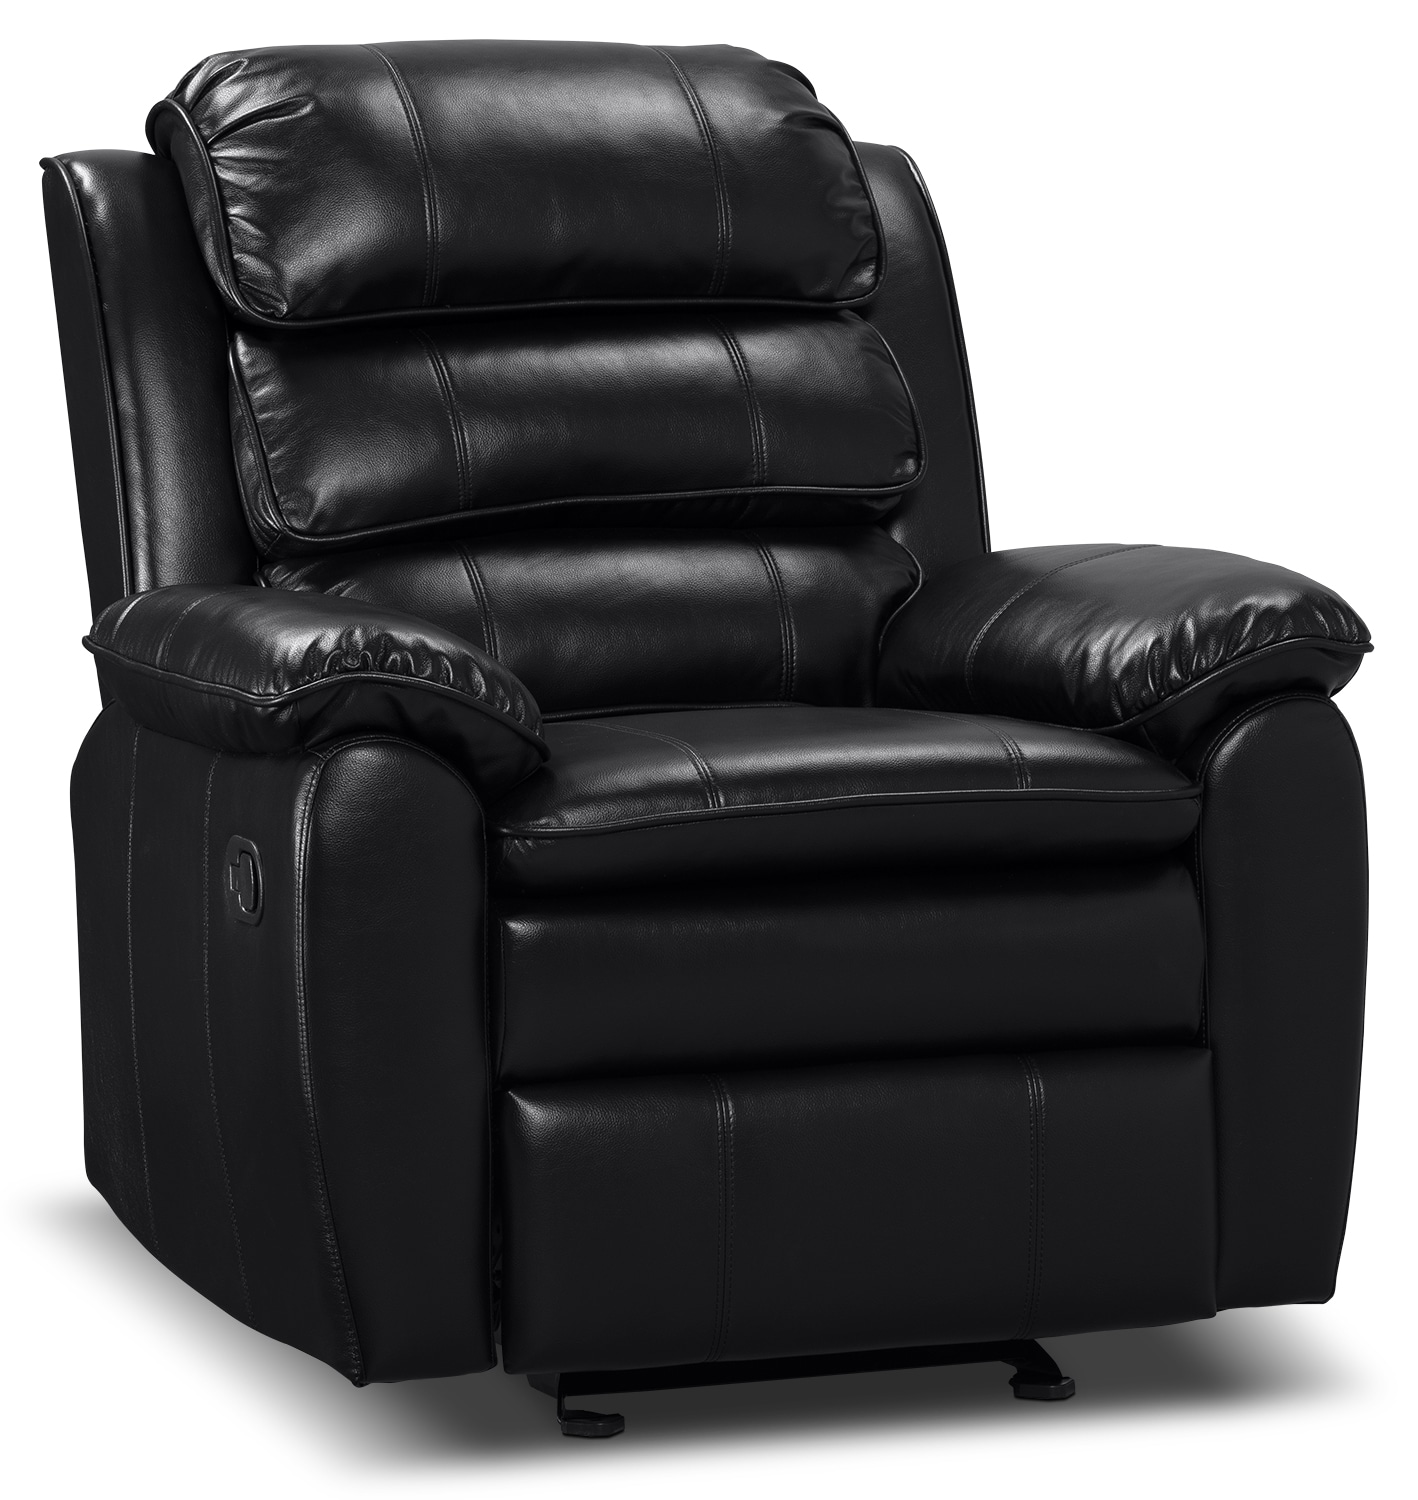 Adam leather look fabric reclining glider chair black - Fabric rocking chairs living room ...